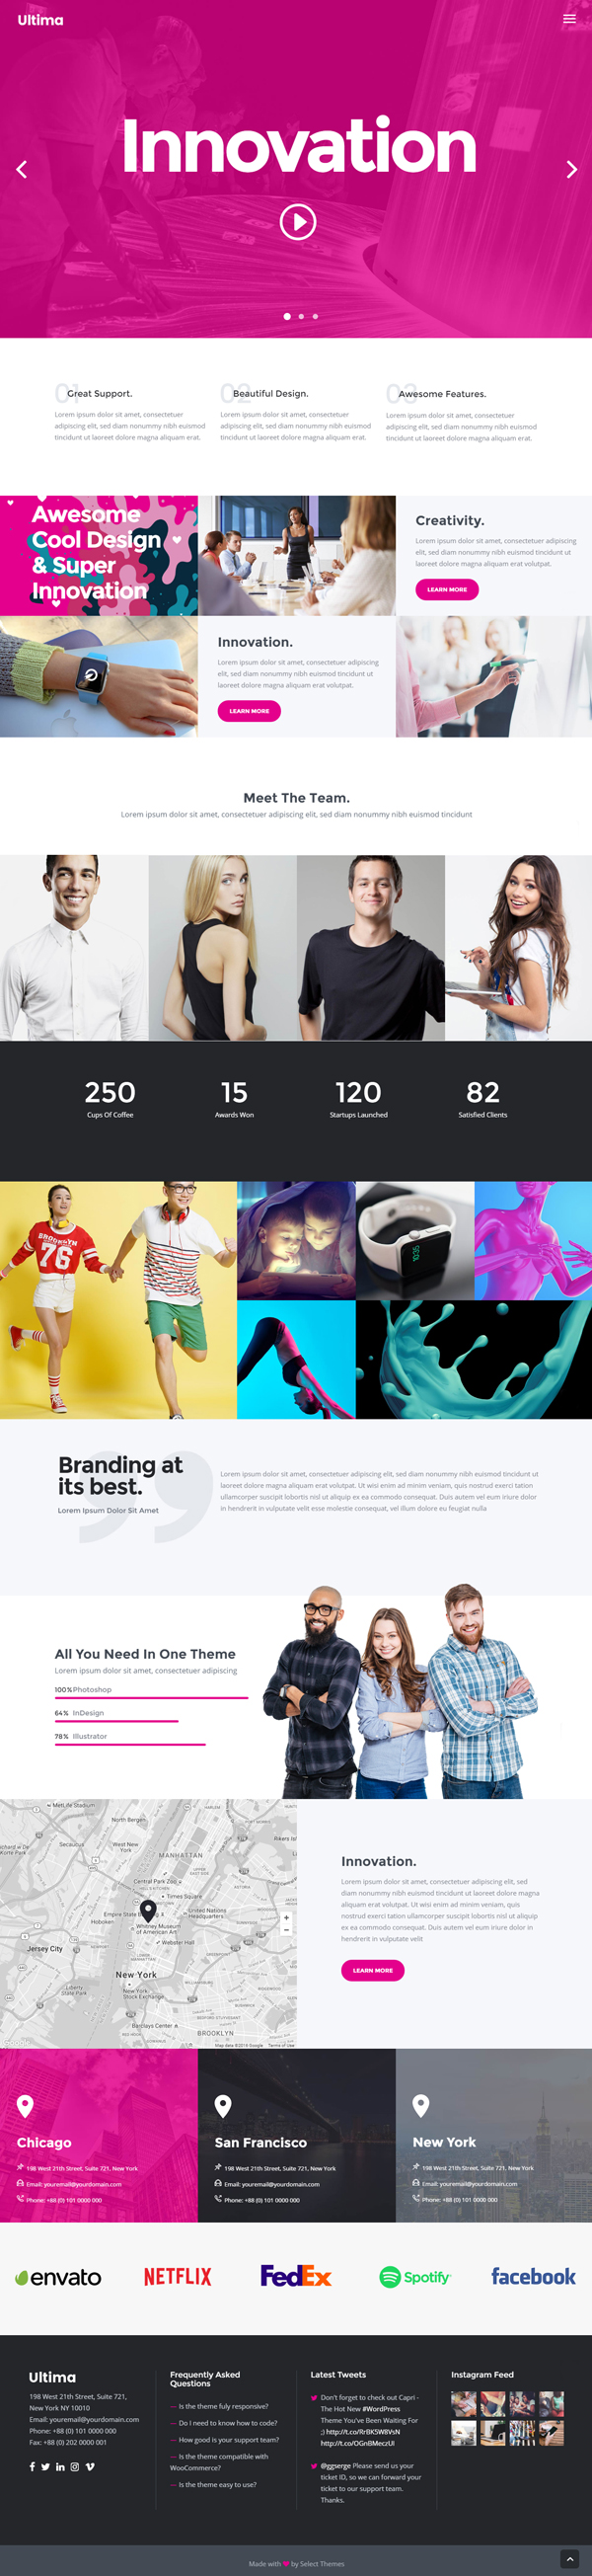 Ultima - A Multi-Purpose WordPress Theme